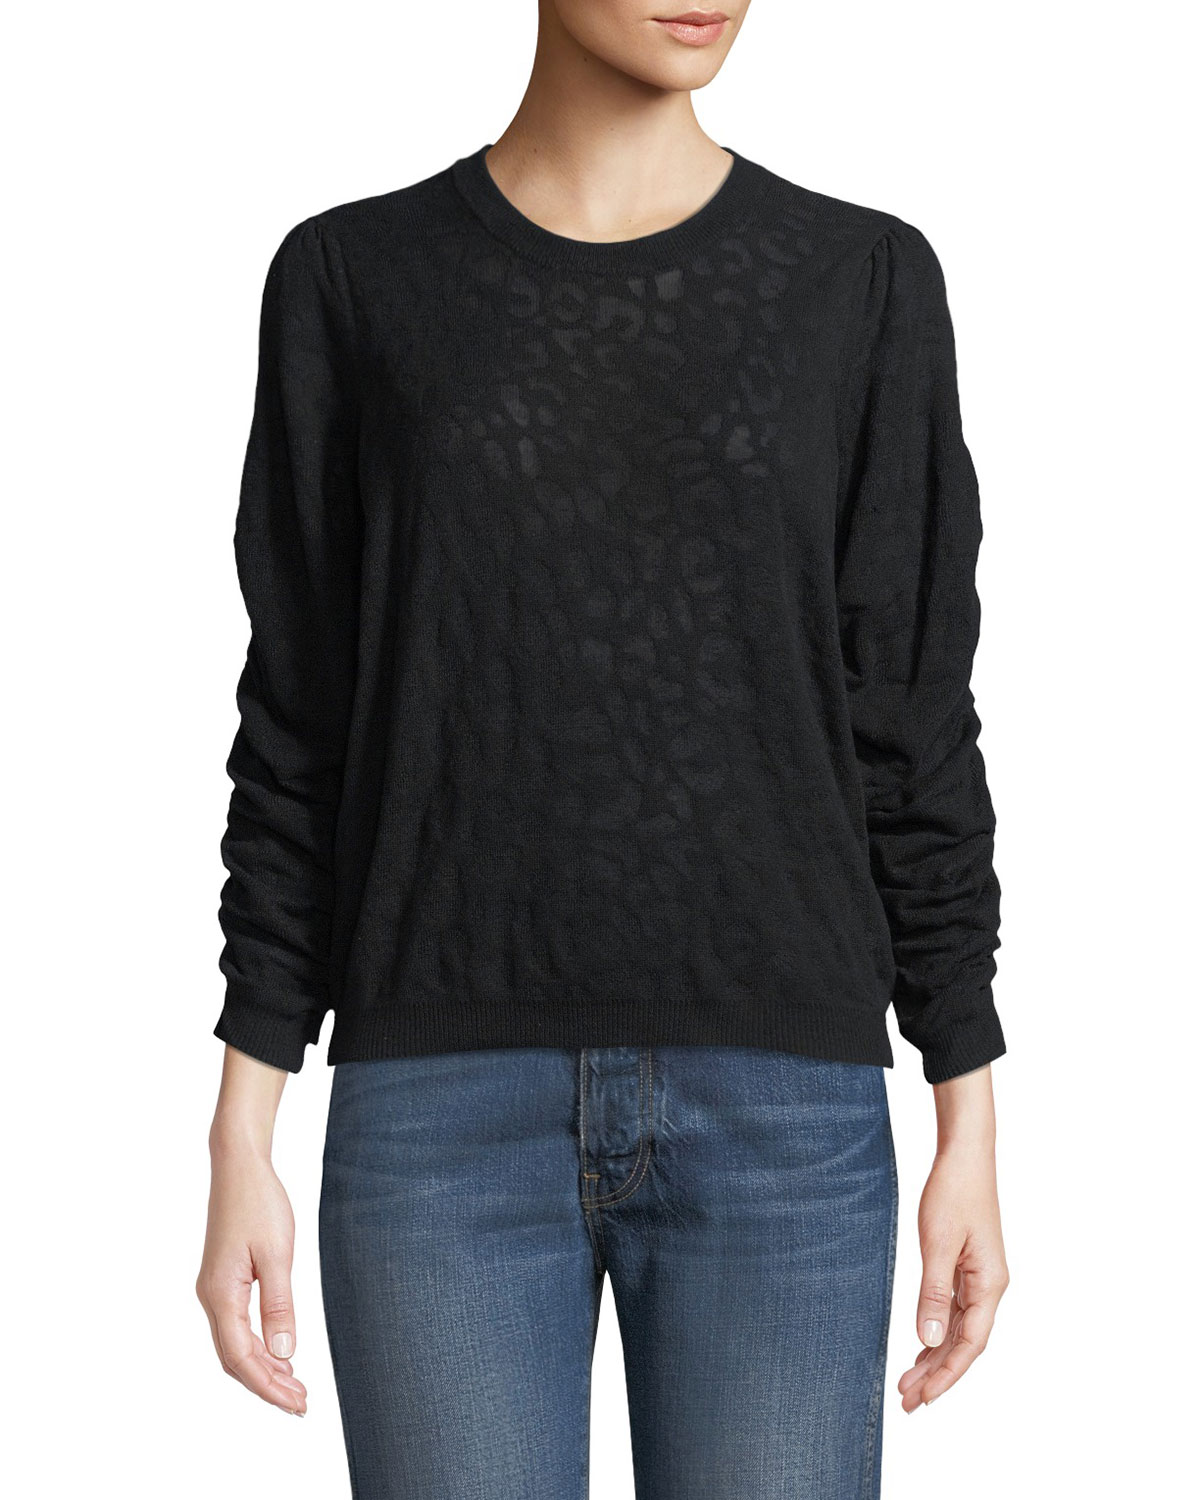 3bc96d104d08 Joie Itana Leopard Jacquard Pullover Sweater | Neiman Marcus